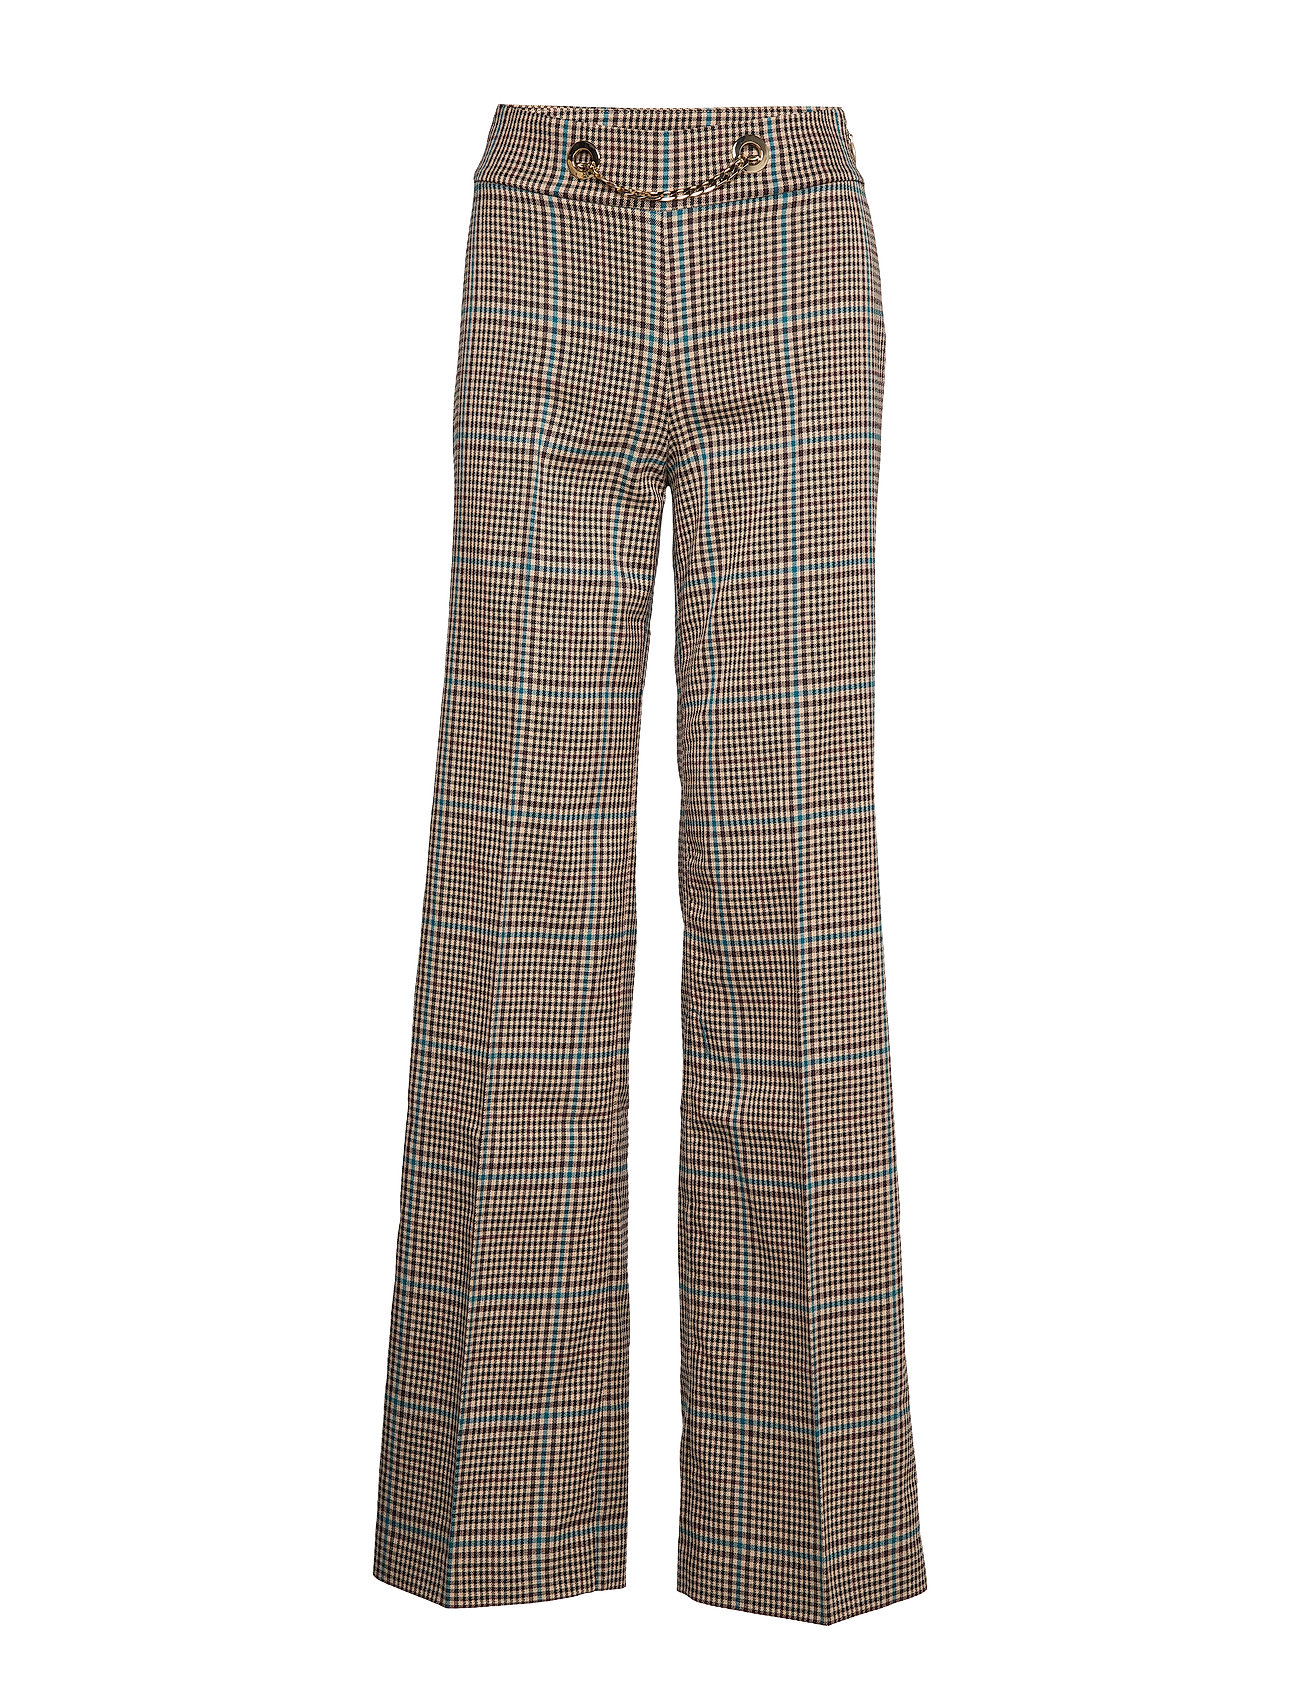 Marciano by GUESS SELMA PLAID PANT - CHECK WARM BEIGE/